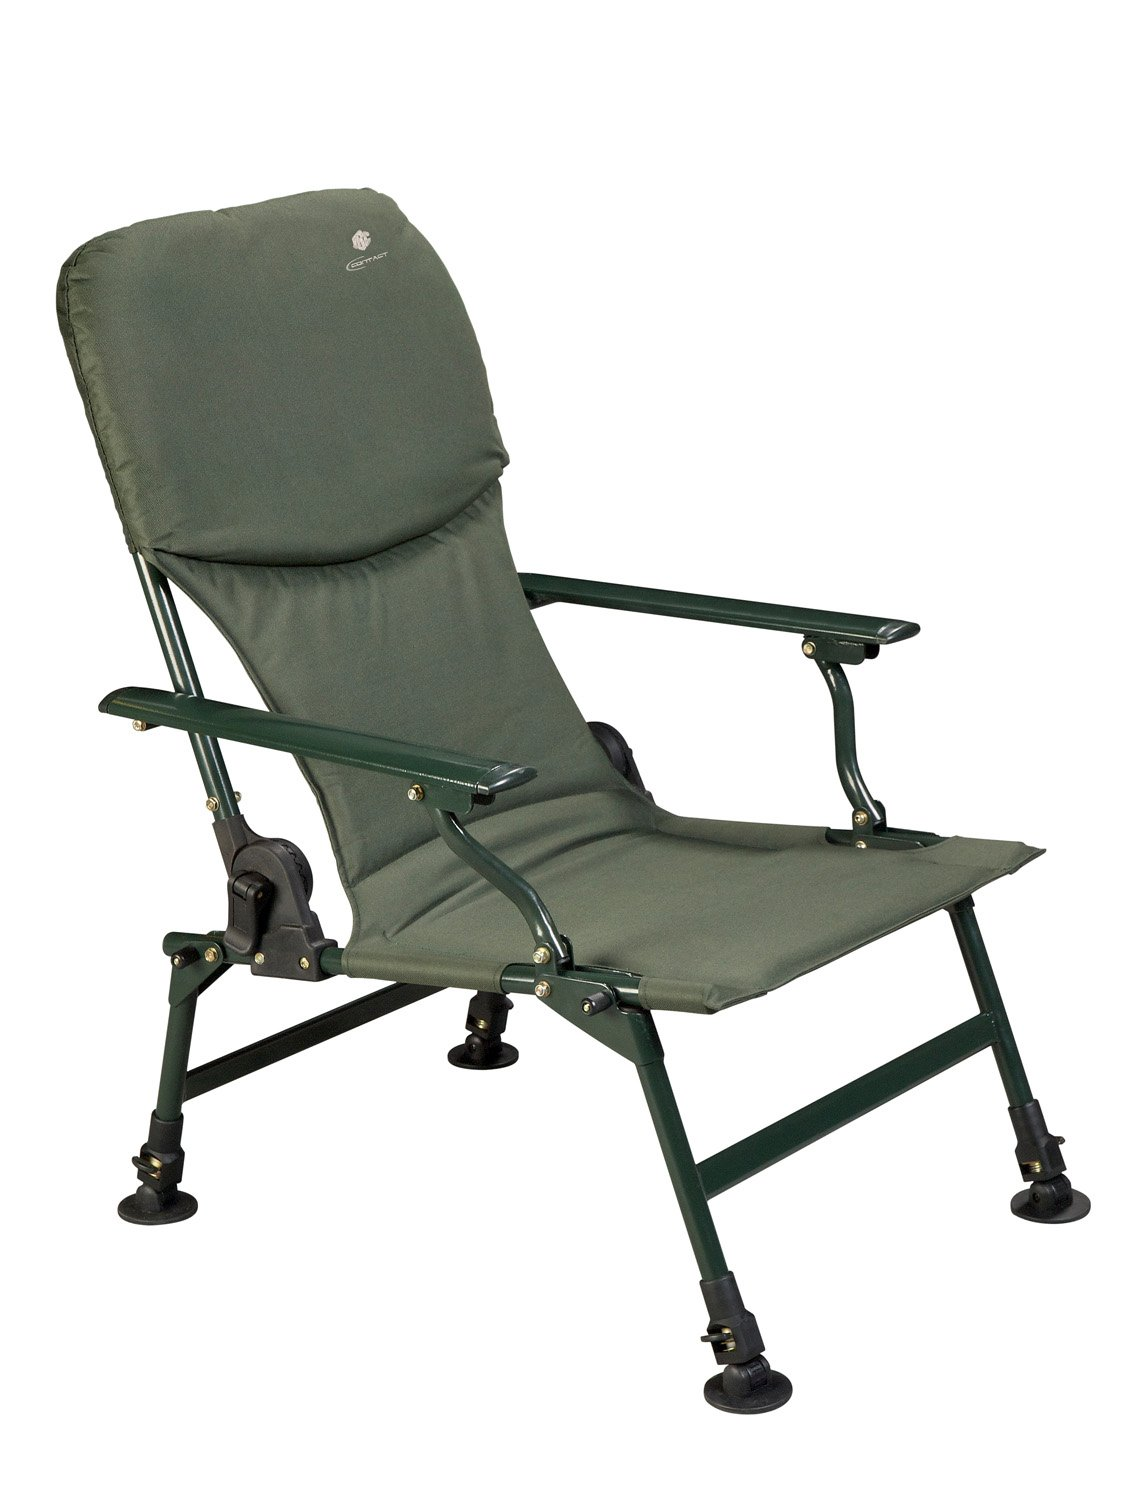 Magnificent Jrc Contact Recliner Chair Green Amazon Co Uk Sports Inzonedesignstudio Interior Chair Design Inzonedesignstudiocom